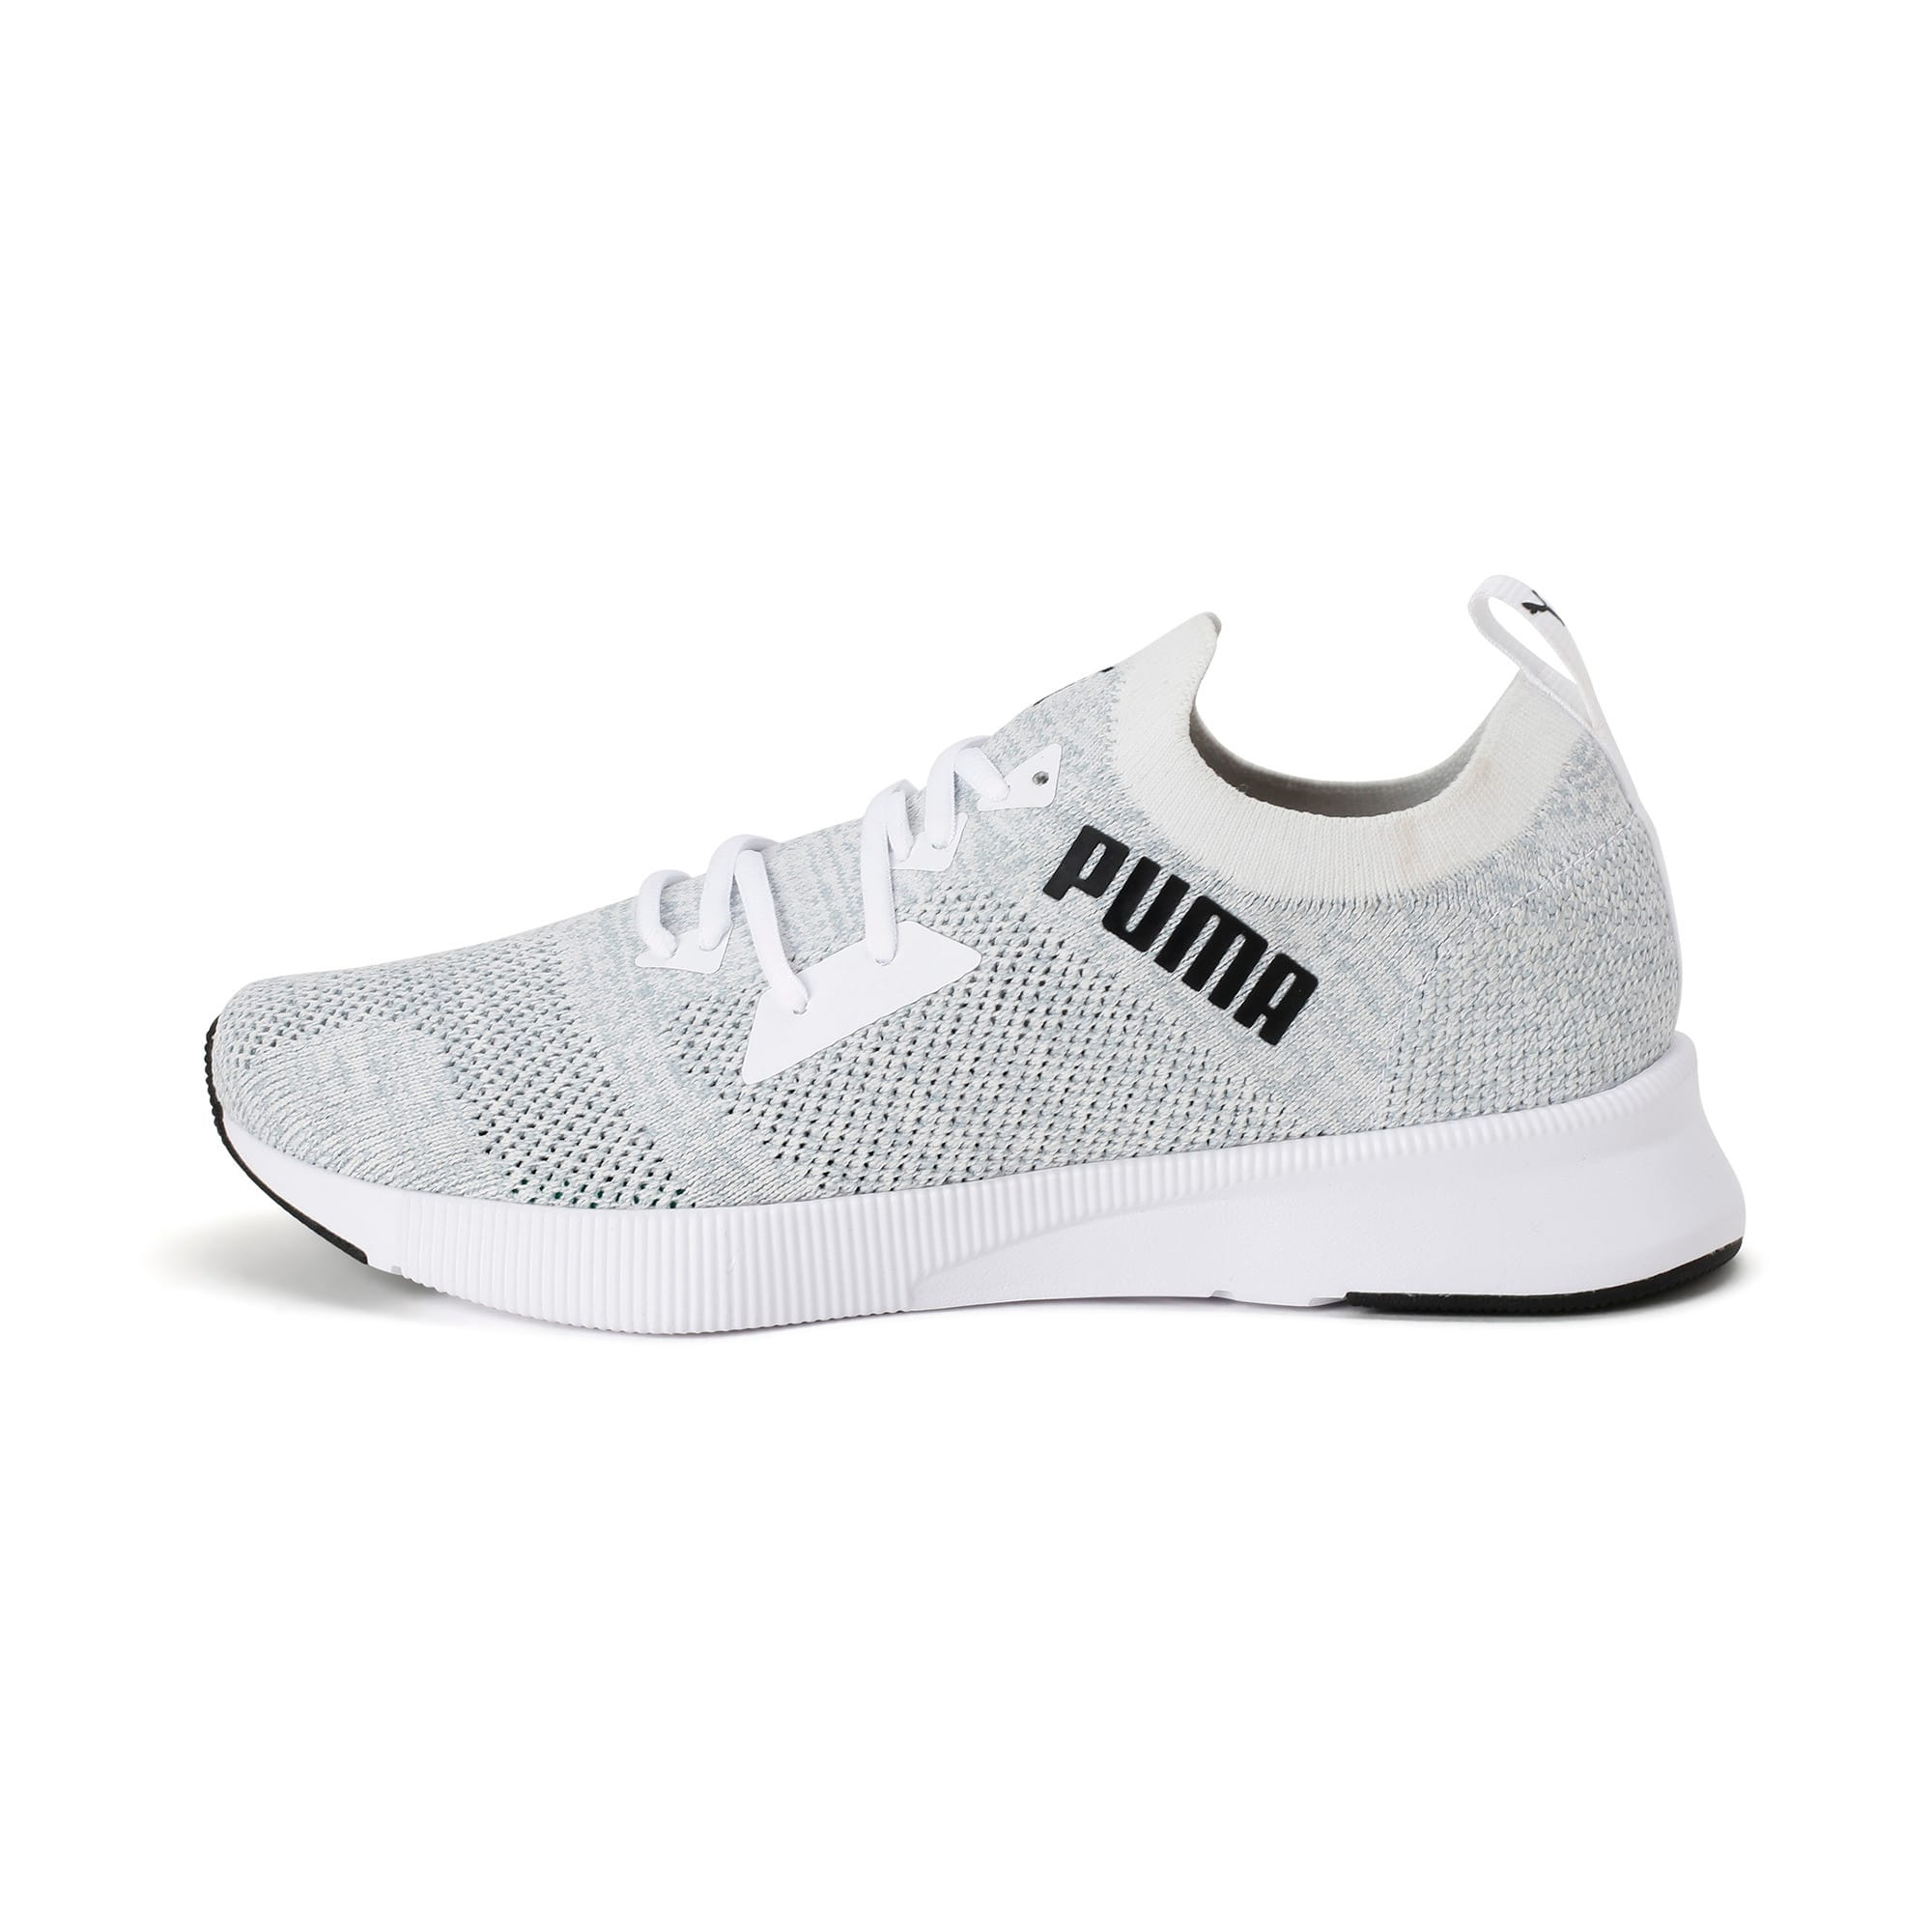 Thumbnail 1 of Flyer Runner Engineered Knit Men's Running Shoes, Puma White-Quarry-Puma Black, medium-IND